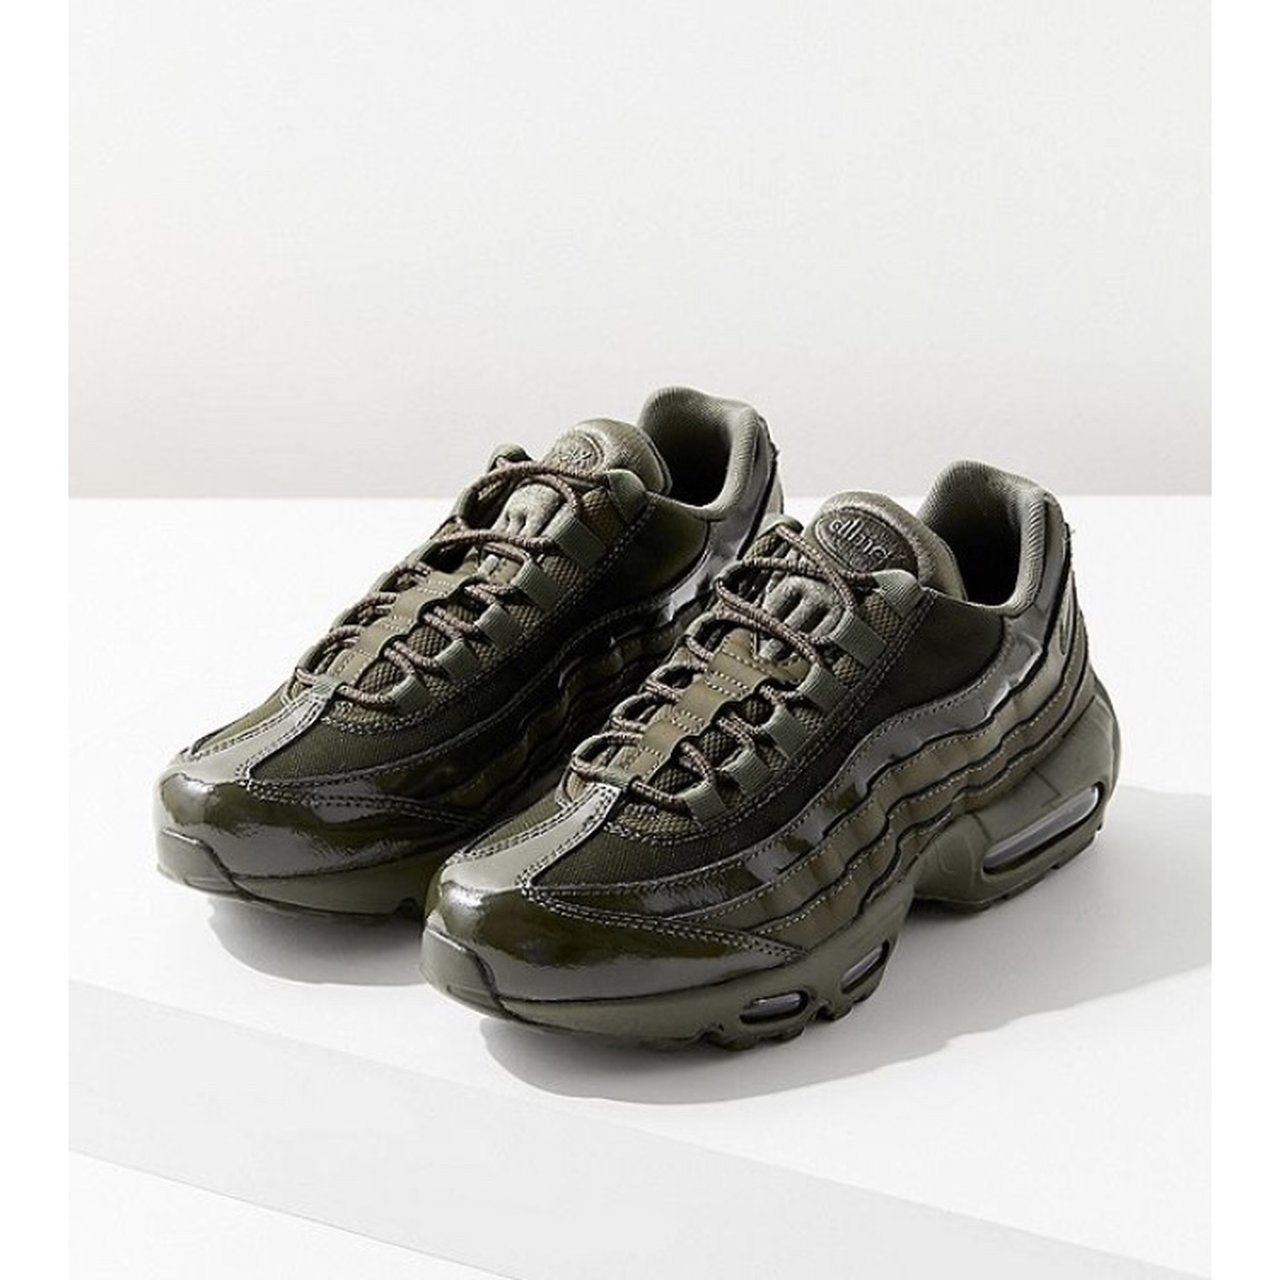 8fdcbeaf37 Nike Air Max 95 in dark olive green! They are soo cute and a - Depop